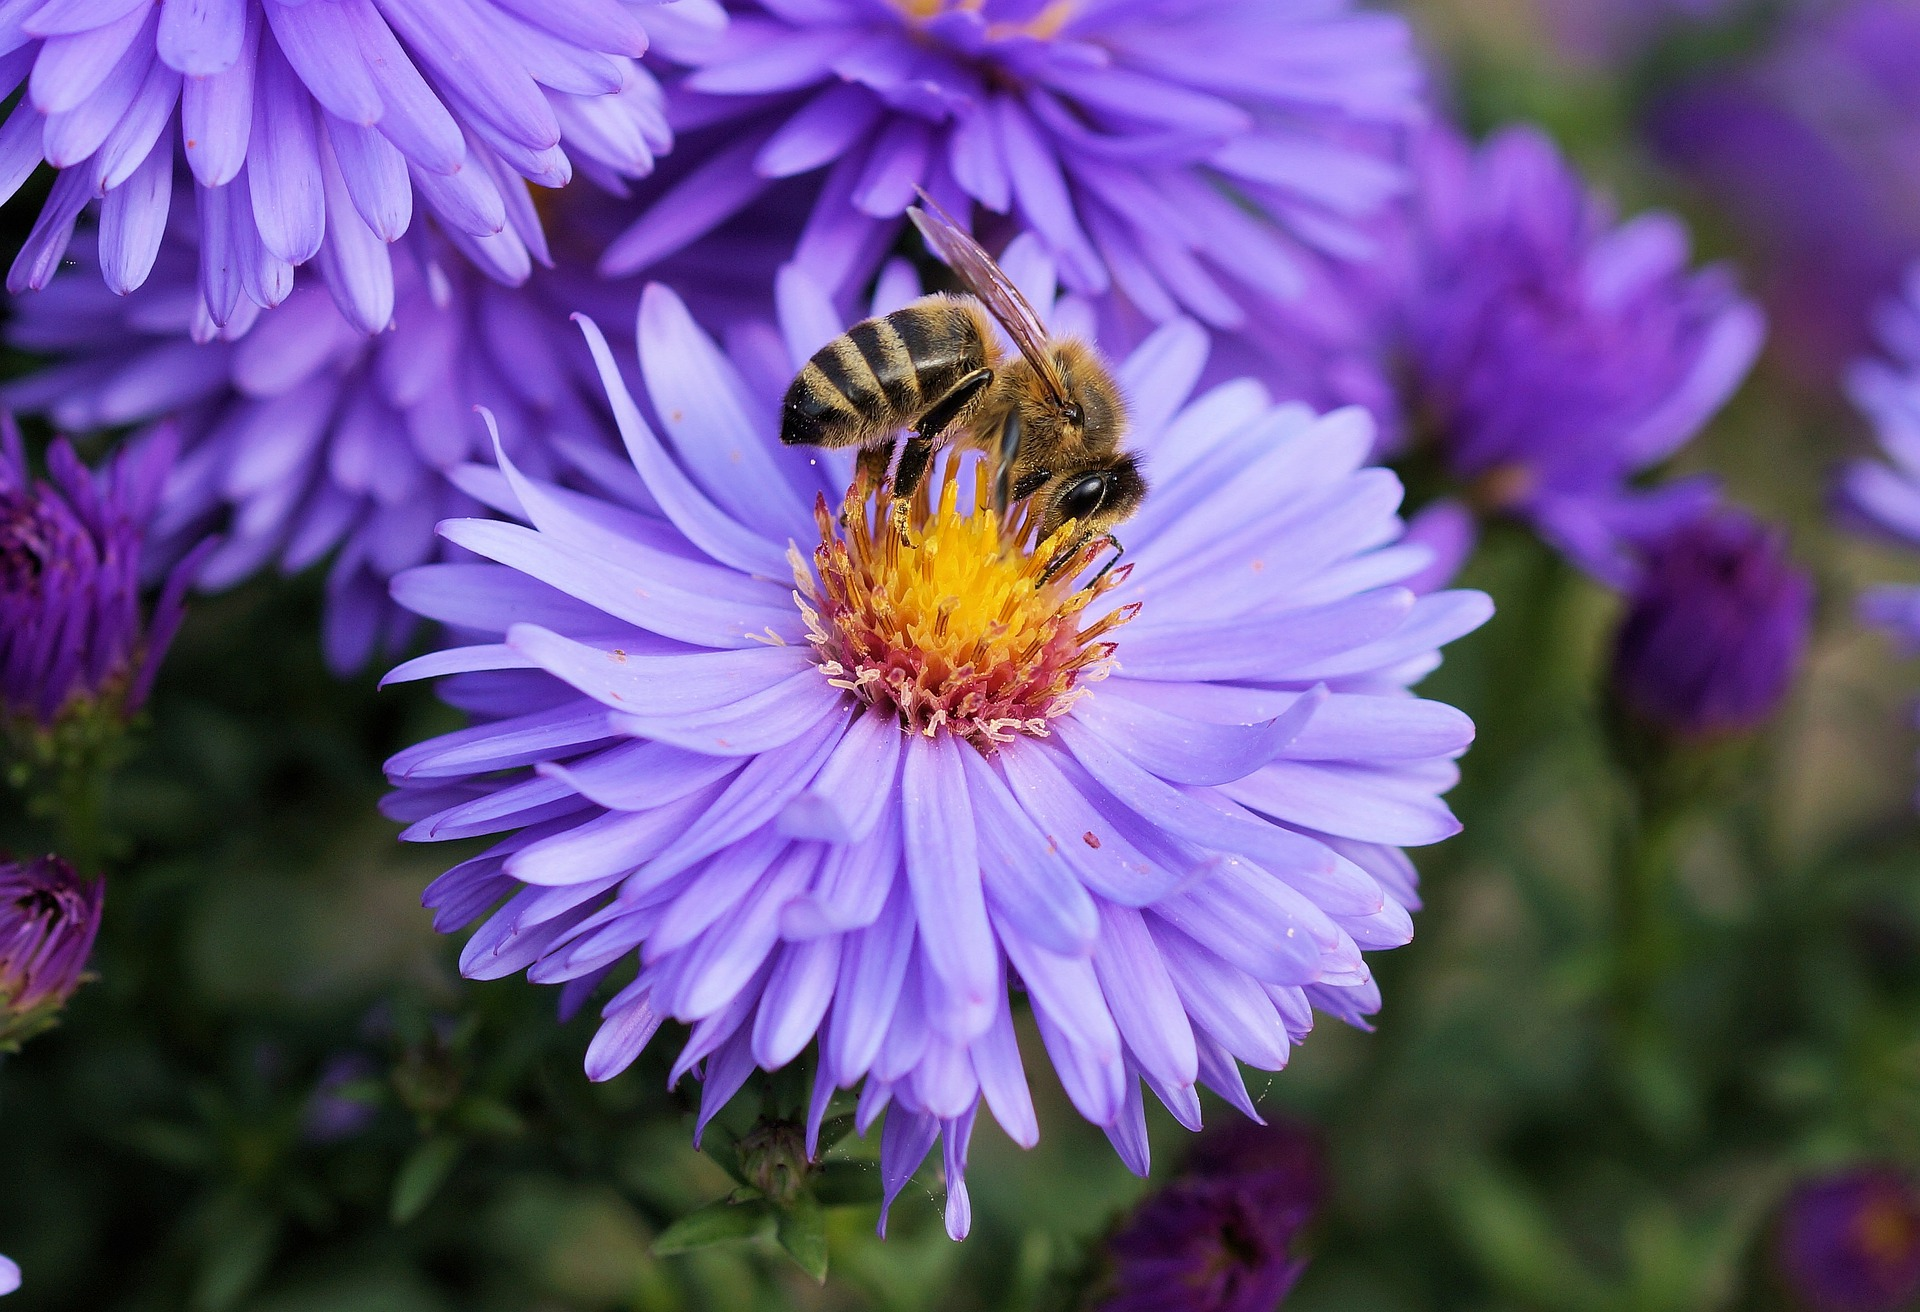 Busy Bees!